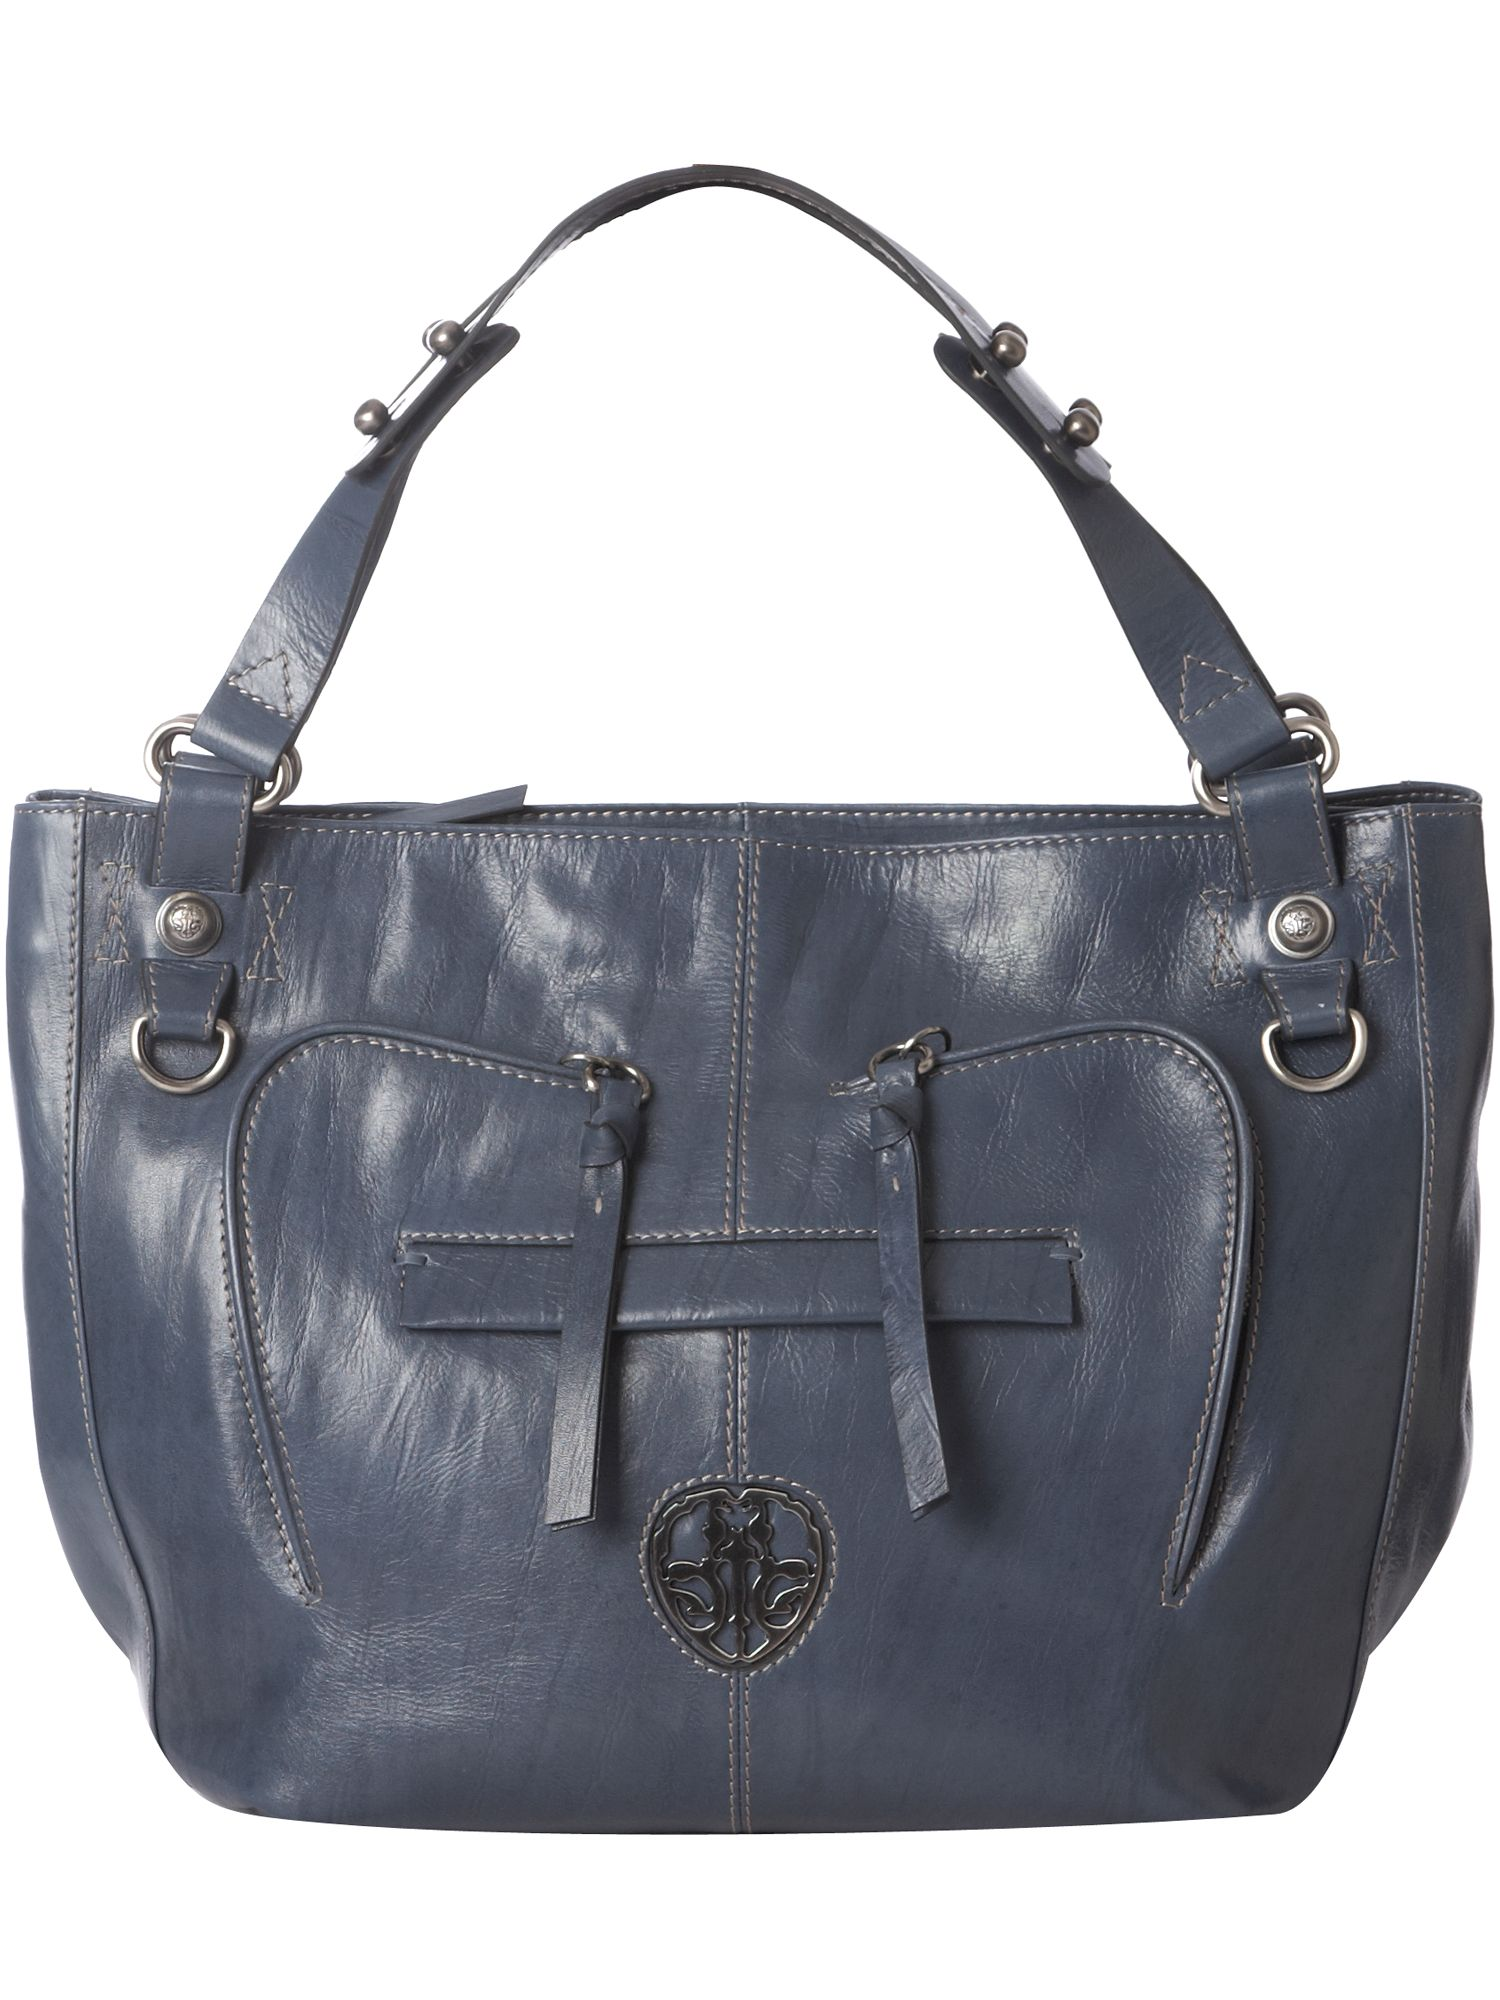 Ameko Jet Large leather tote bag. product image